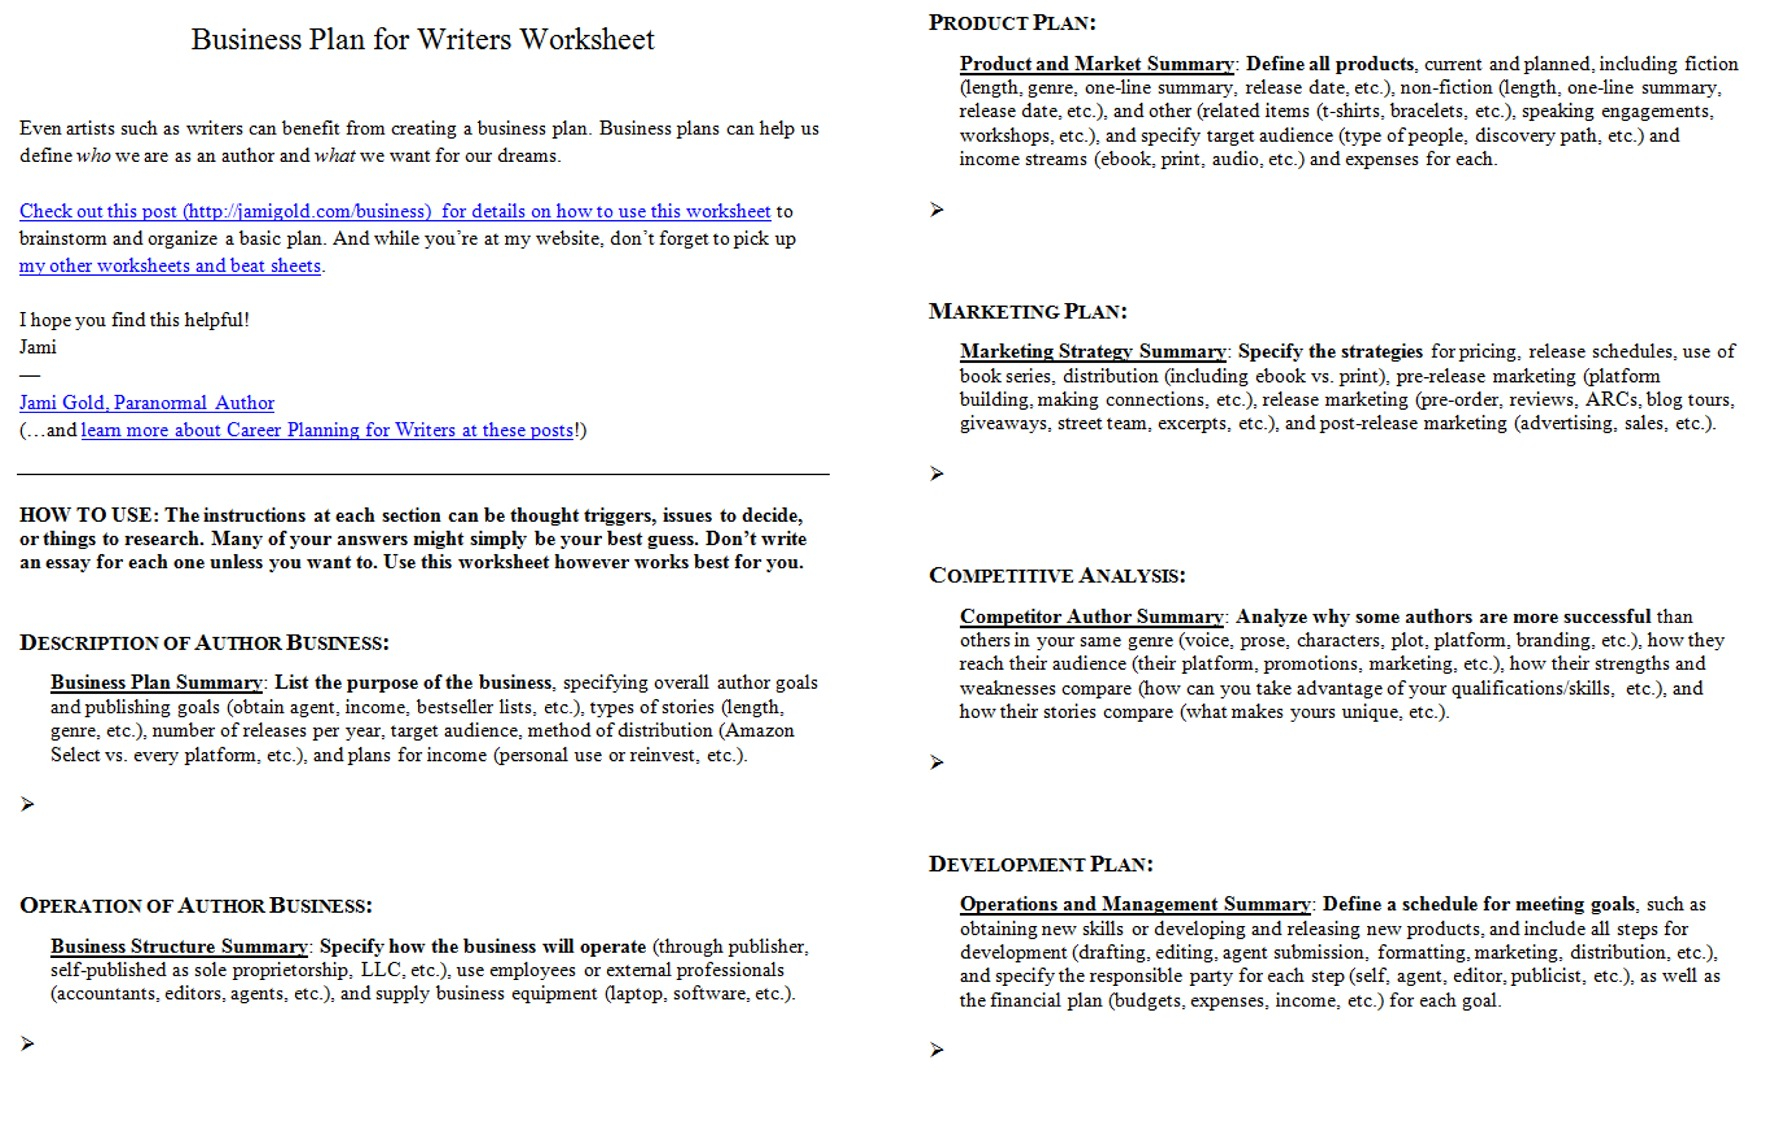 Aldiablosus  Fascinating Worksheets For Writers  Jami Gold Paranormal Author With Marvelous Screen Shot Of Both Pages Of The Business Plan For Writers Worksheet With Awesome Geometry Angle Relationships Worksheets Also Limiting Reactant Worksheet With Answers In Addition English Worksheets For Kids And Label Body Parts Worksheet As Well As Math Doubles Worksheet Additionally Media Literacy Worksheets From Jamigoldcom With Aldiablosus  Marvelous Worksheets For Writers  Jami Gold Paranormal Author With Awesome Screen Shot Of Both Pages Of The Business Plan For Writers Worksheet And Fascinating Geometry Angle Relationships Worksheets Also Limiting Reactant Worksheet With Answers In Addition English Worksheets For Kids From Jamigoldcom